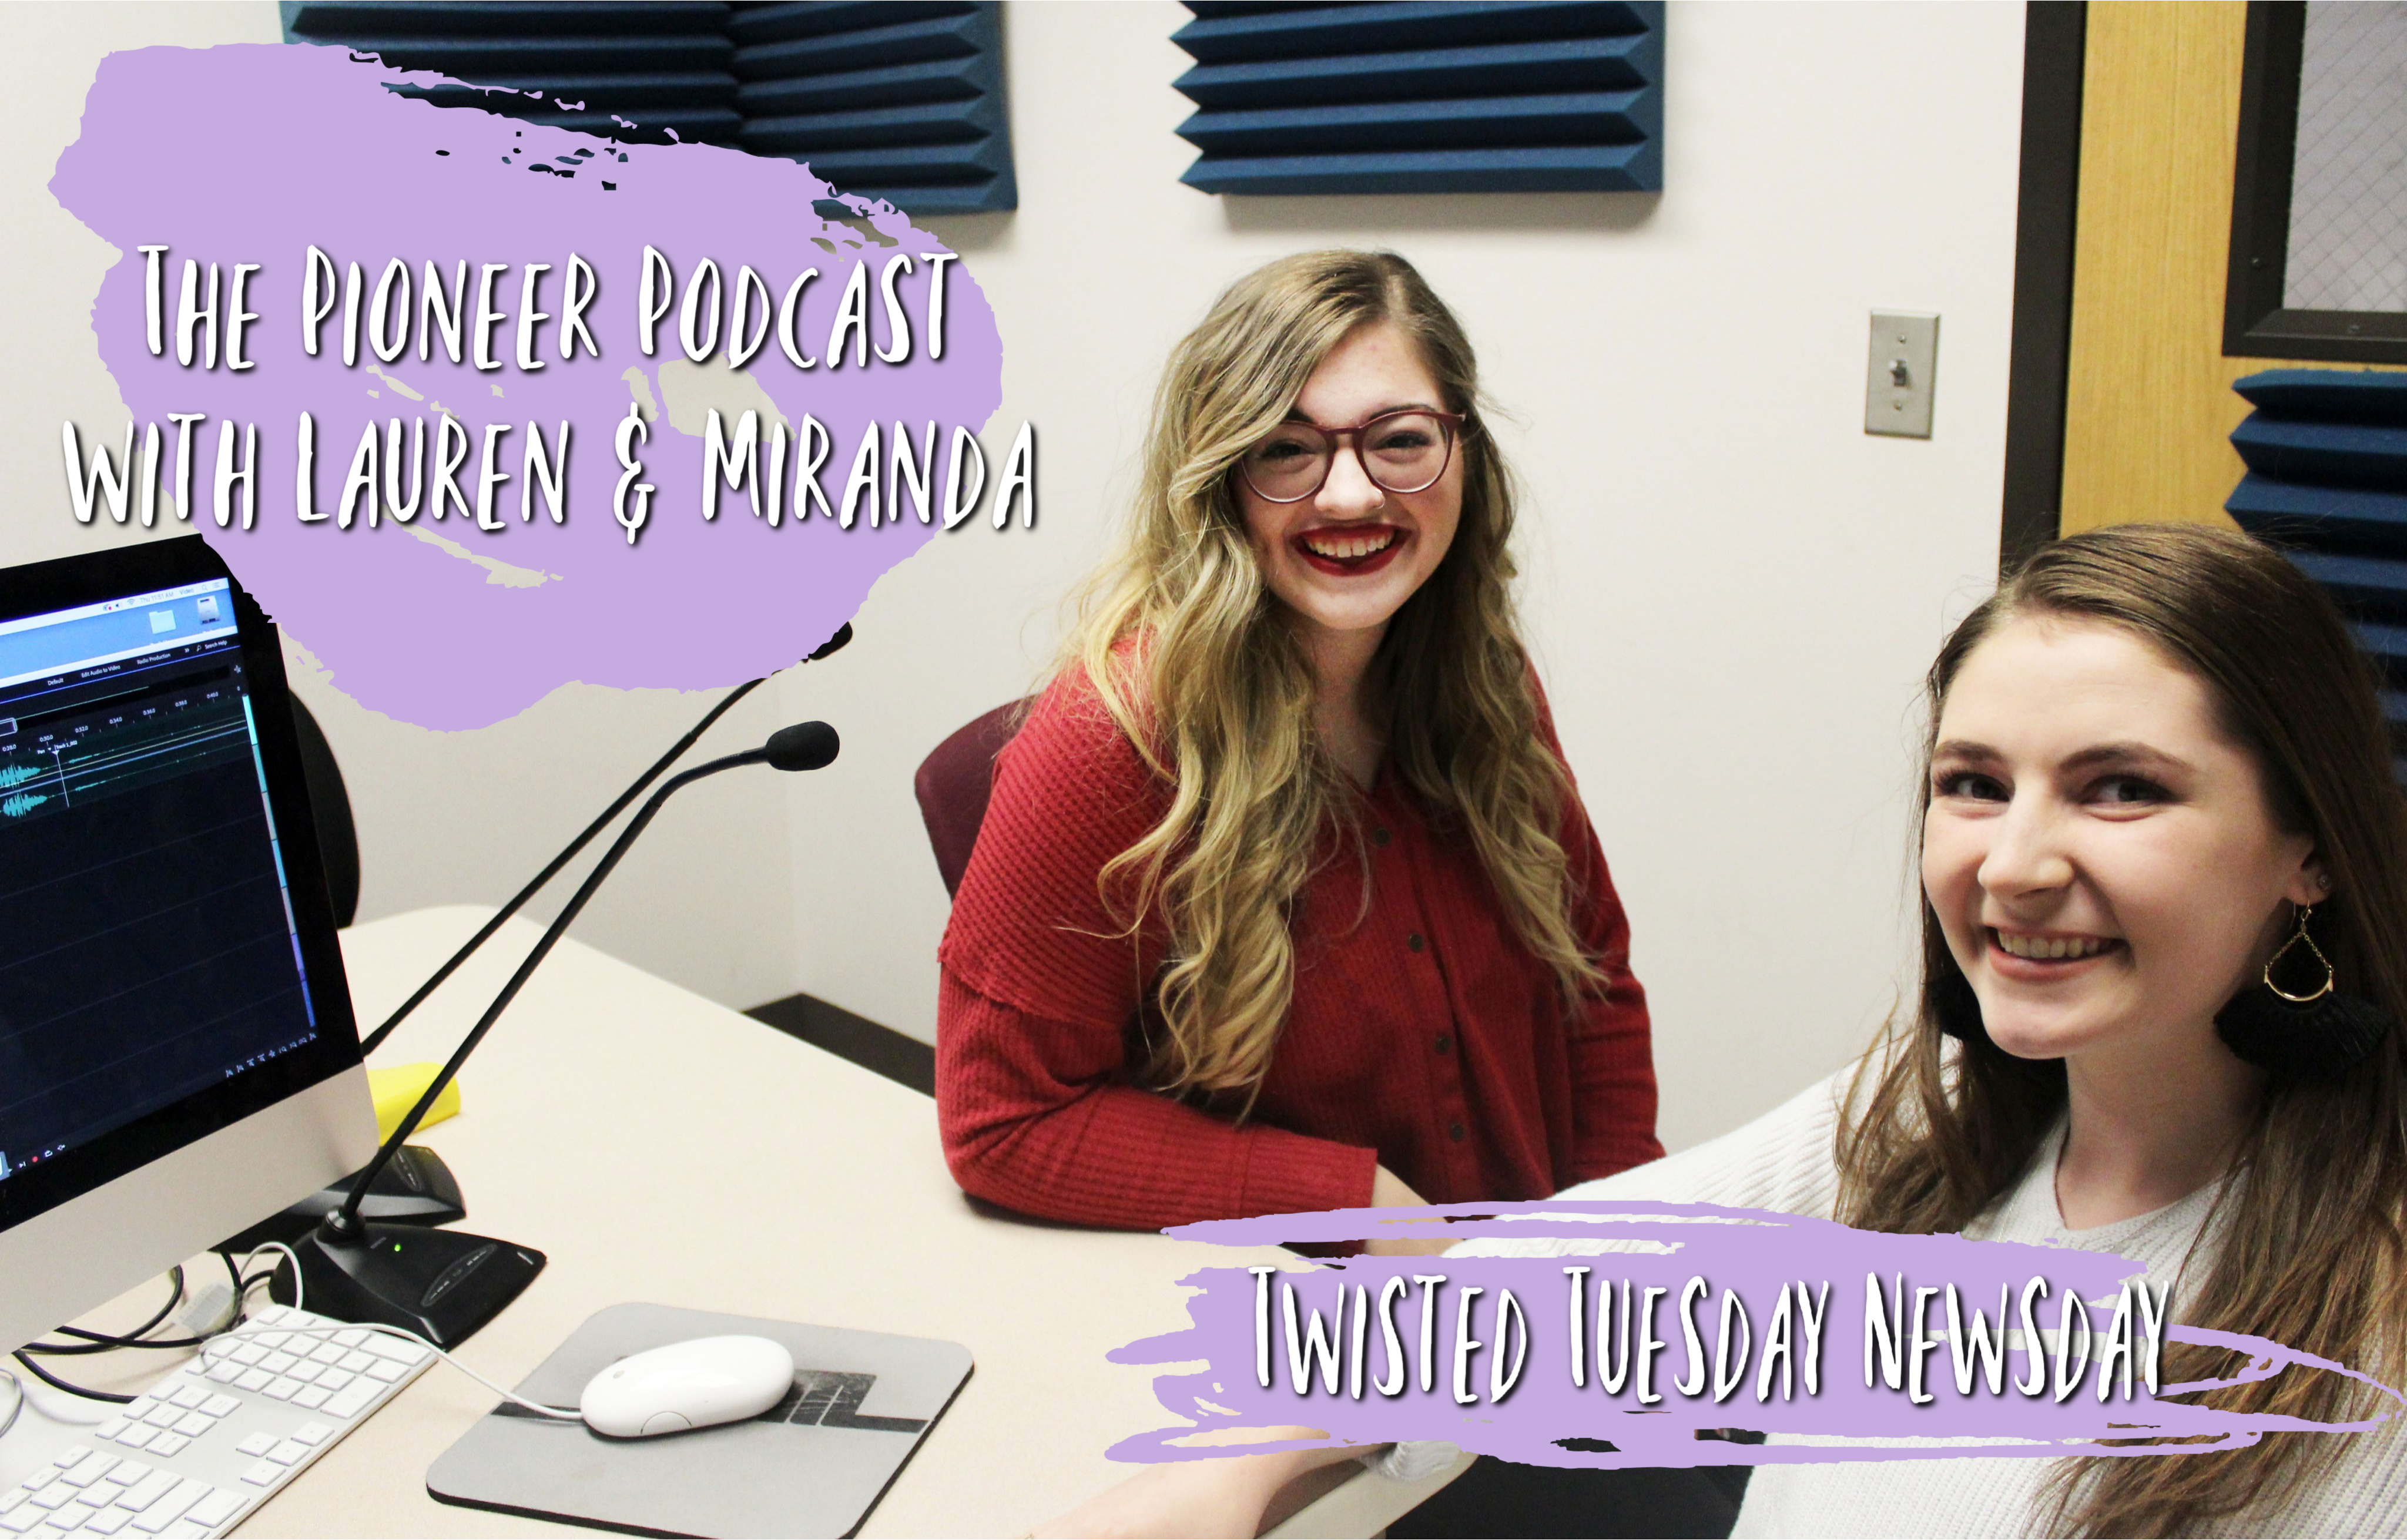 The Pioneer Podcast with Lauren and Miranda: Twisted Tuesday Newsday